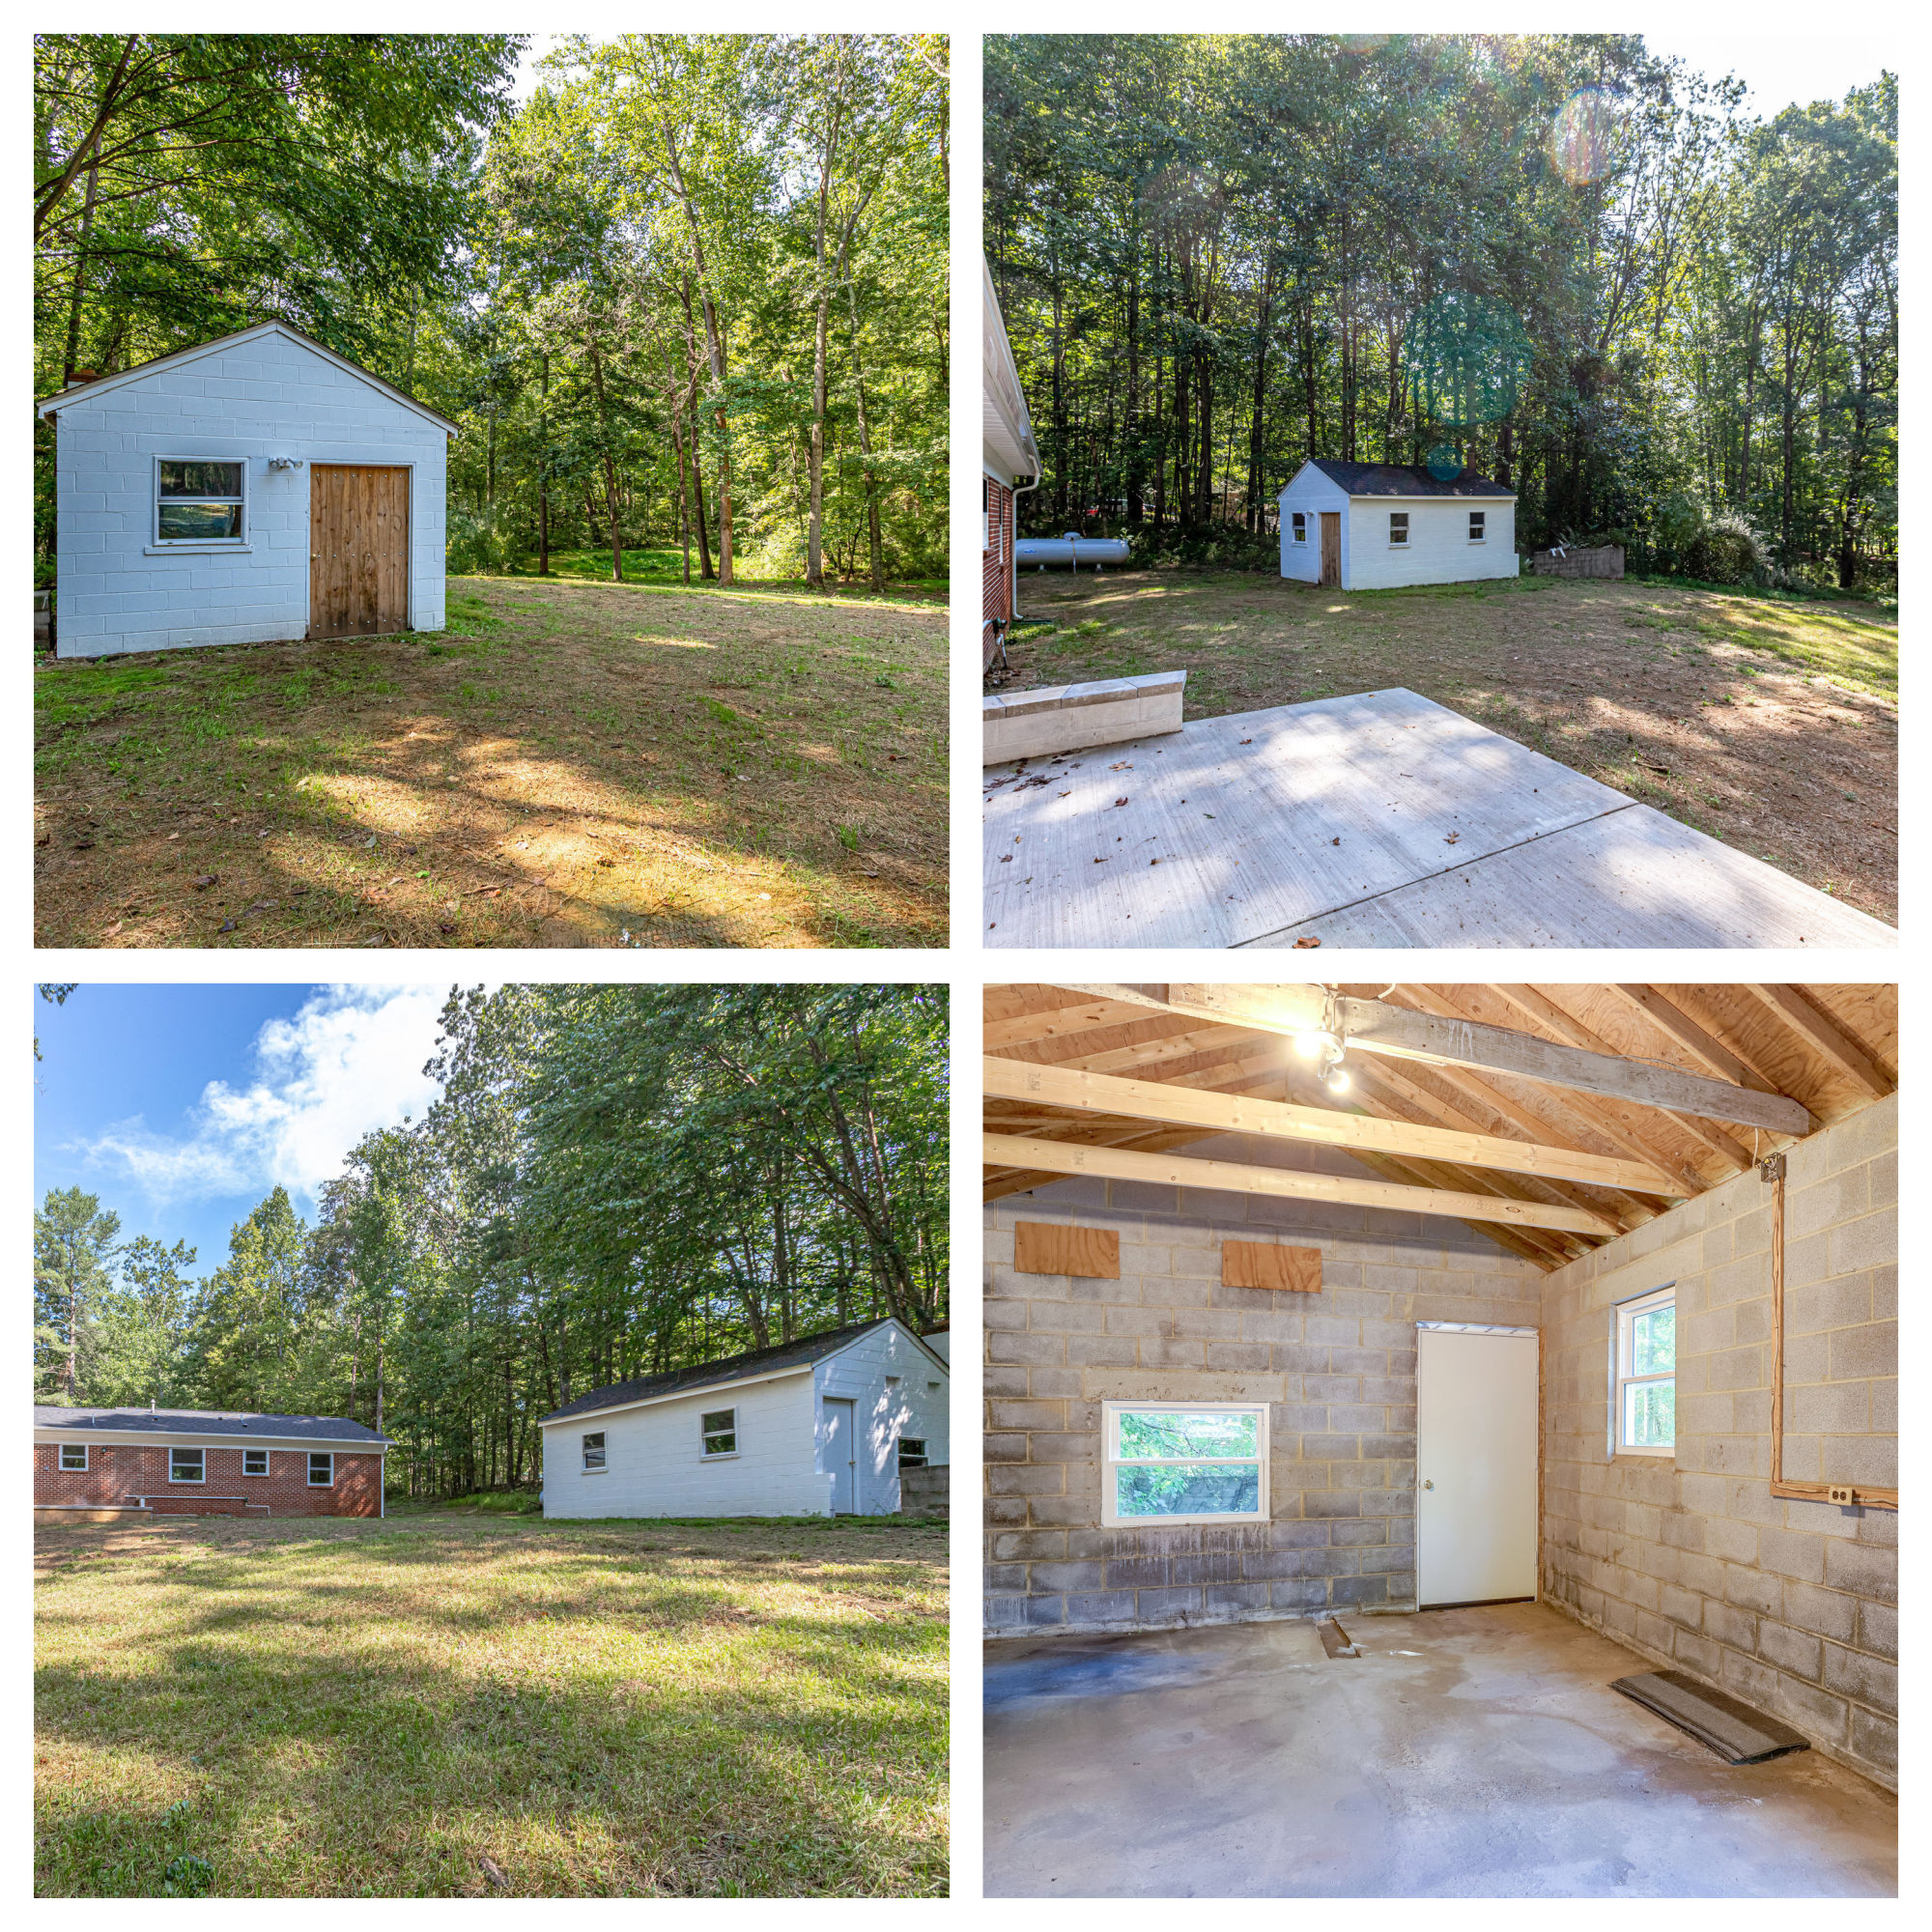 584 Aaron Mountain Rd, Castleton- Shed